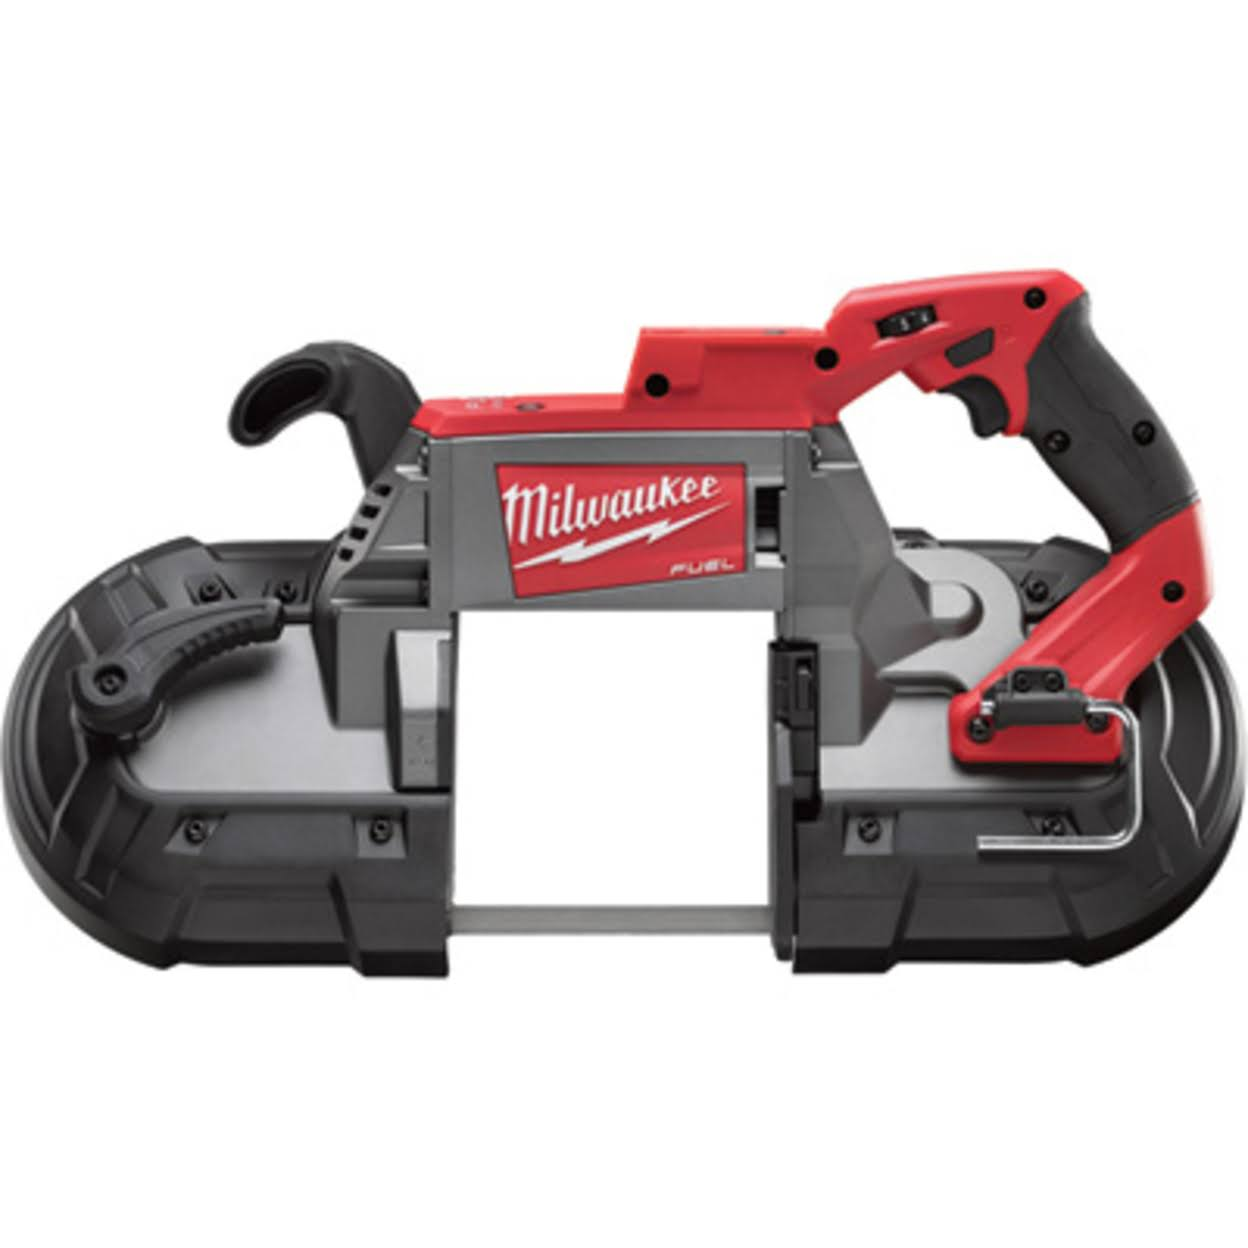 Milwaukee Fuel Deep Cut Band Saw - 18V